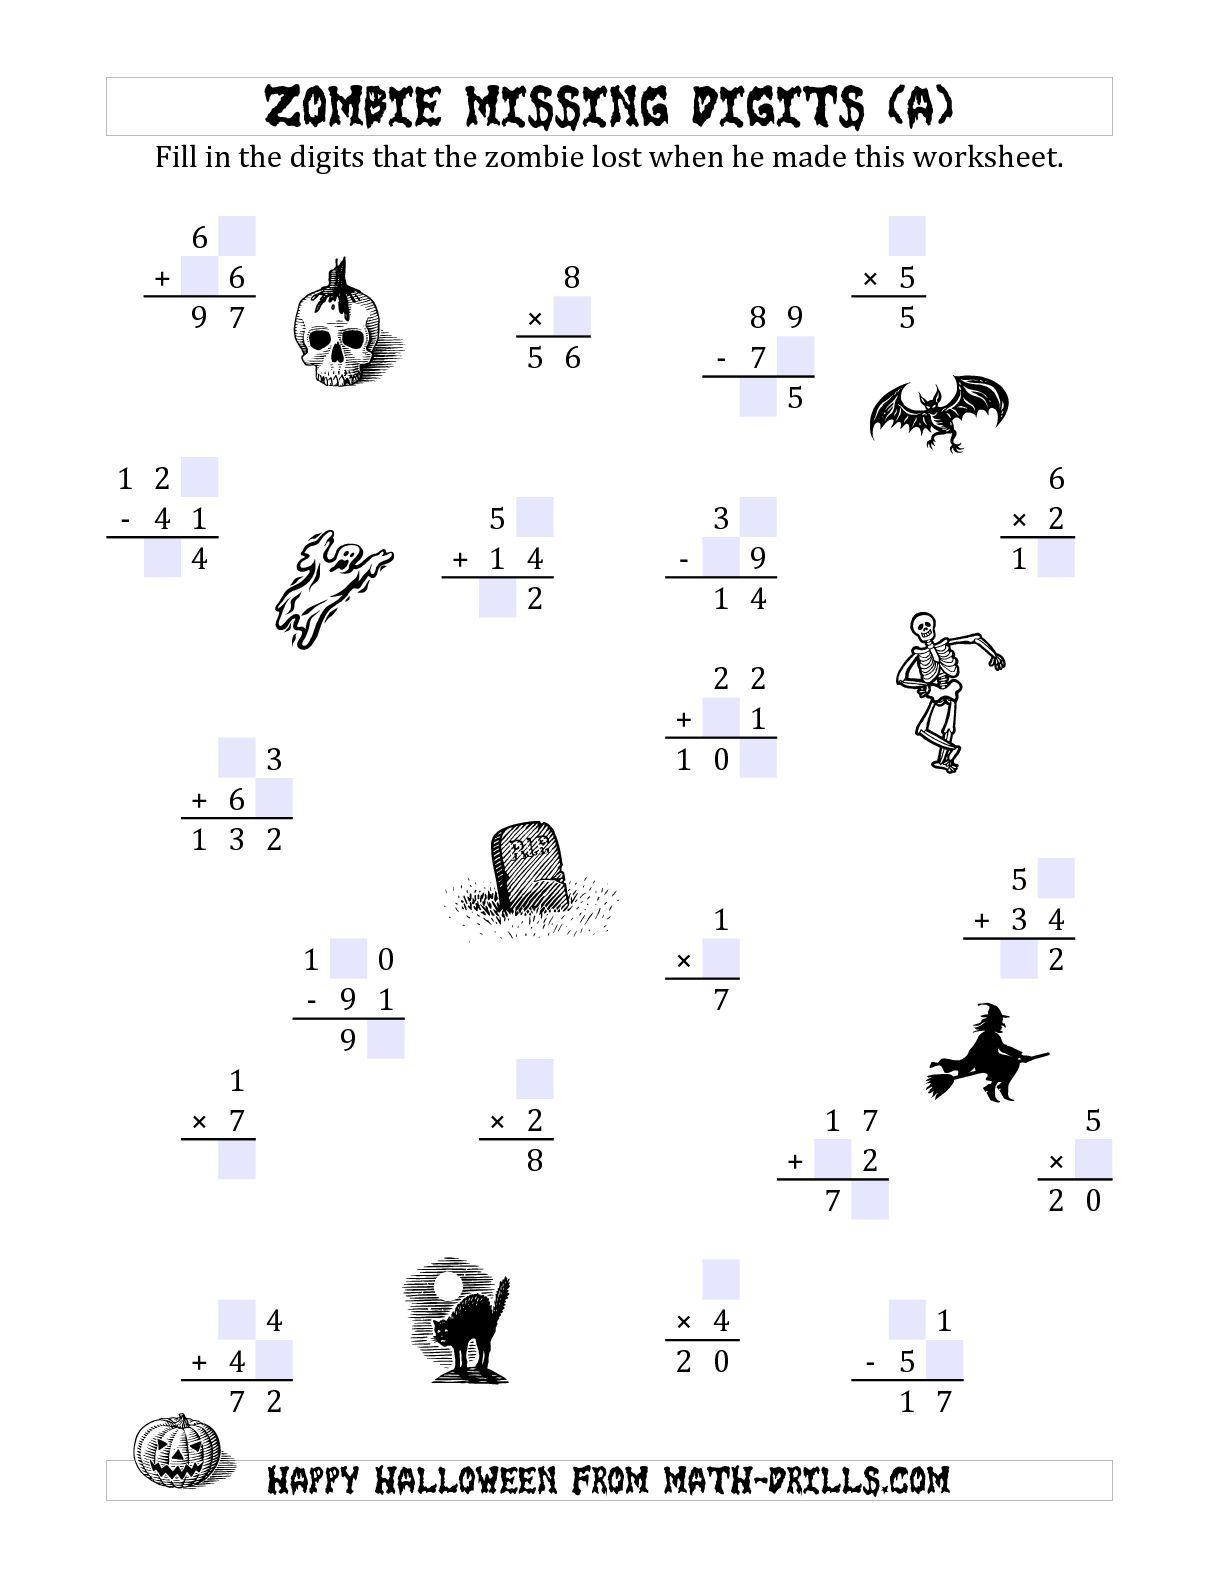 the zombie missing digits a math worksheet from the halloween